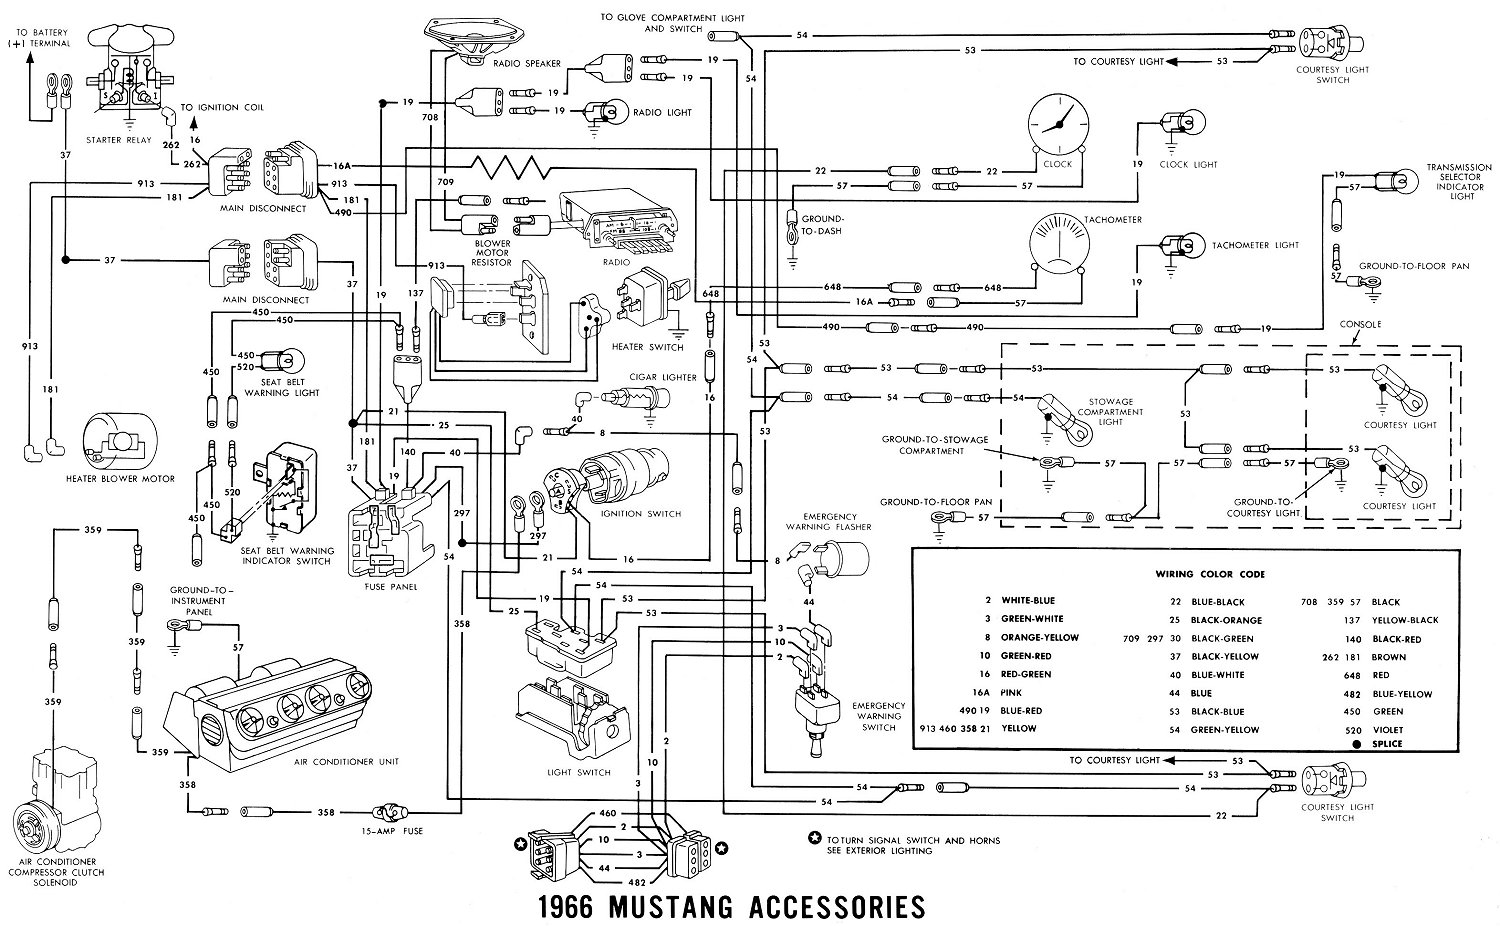 66acces1 1966 mustang wiring diagram 1967 mustang wiring schematic \u2022 wiring 1966 mustang wiring harness kit at n-0.co